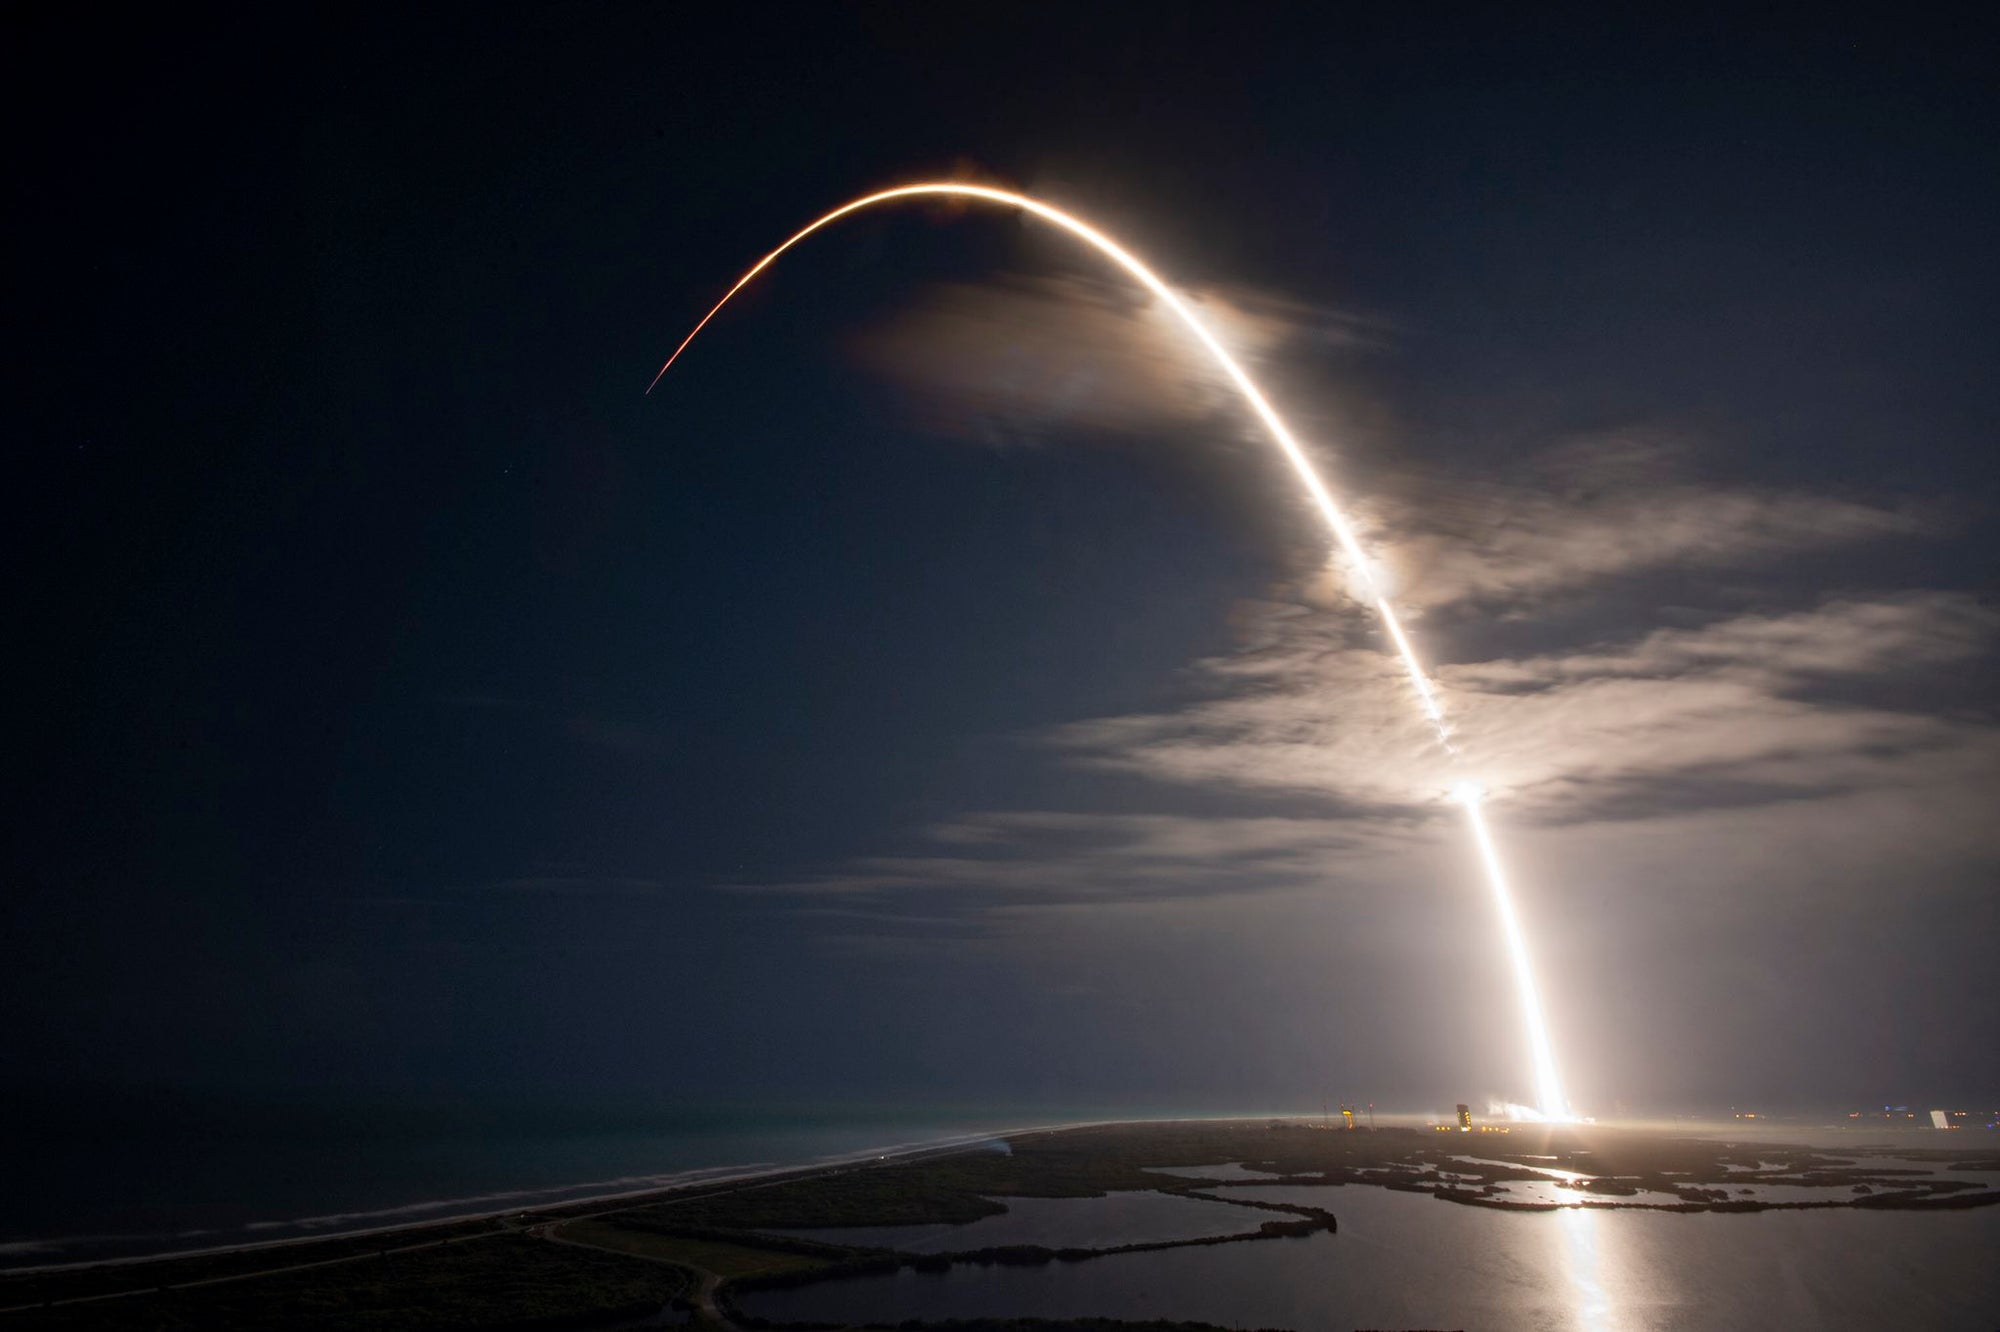 SpaceX lifts off the JCSAT-18/Kacific-1 communications satellite into orbit